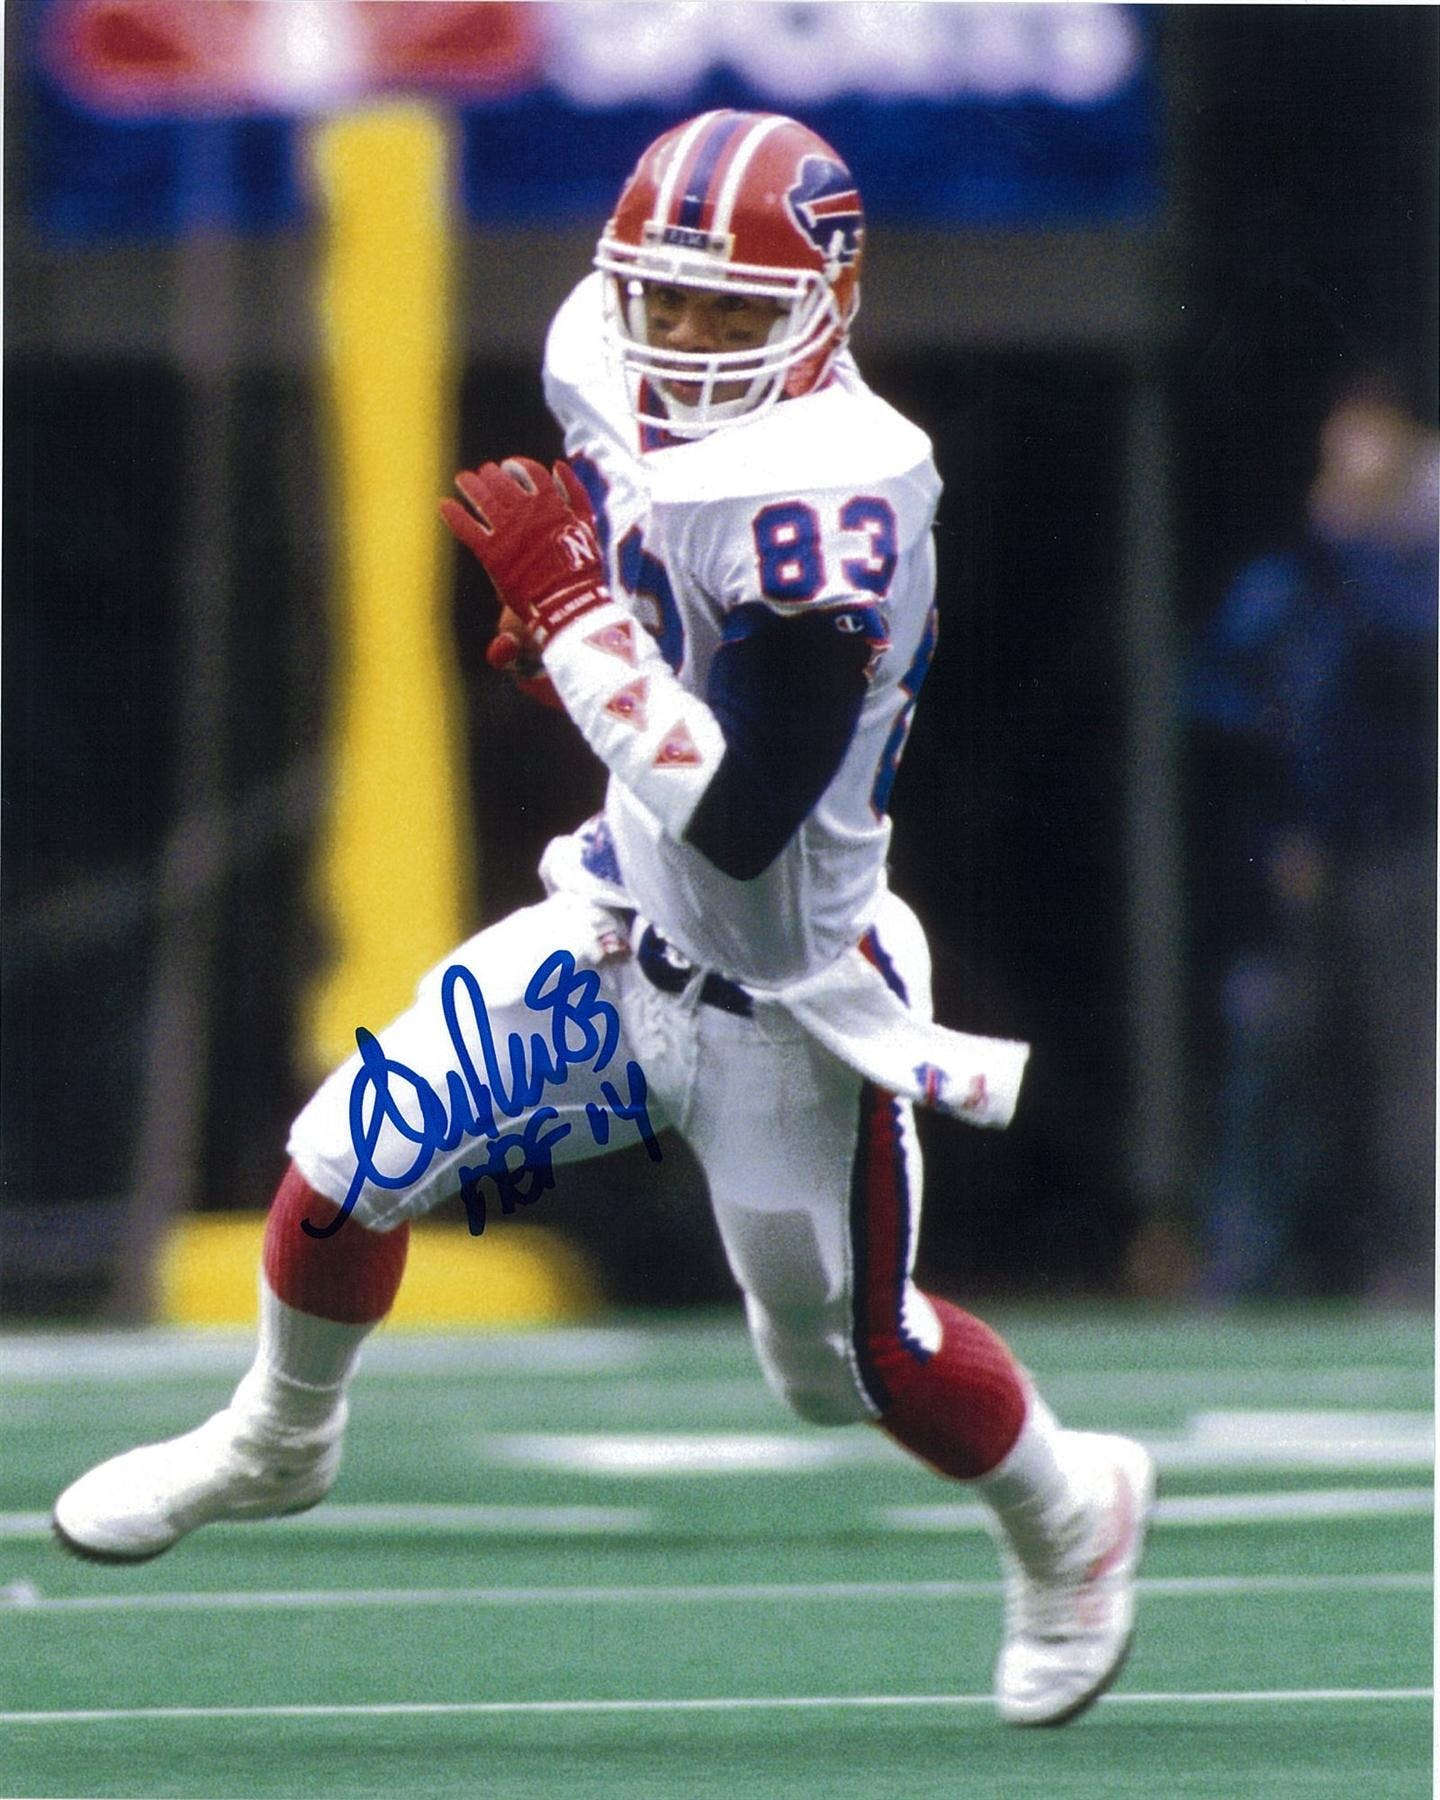 df171ecf978 Andre Reed Autographed Buffalo Bills 8x10 Football Photo with HOF ...